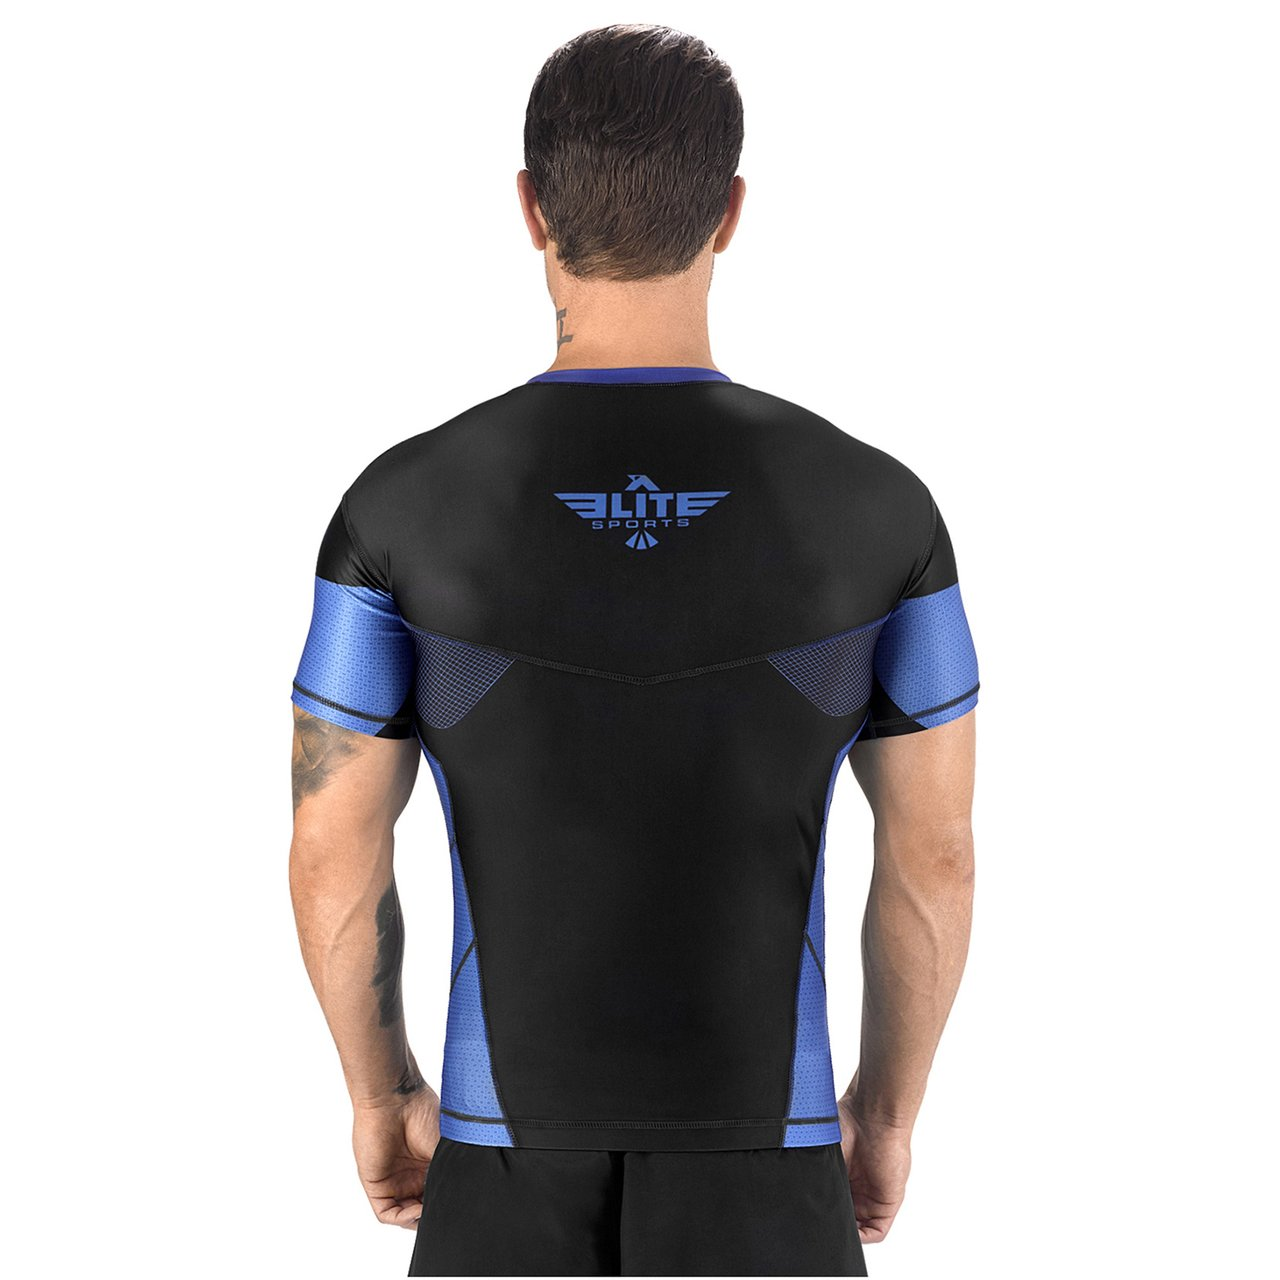 Load image into Gallery viewer, Elite Sports Honey Comb Sublimation Black/Blue Short Sleeve Muay Thai Rash Guard